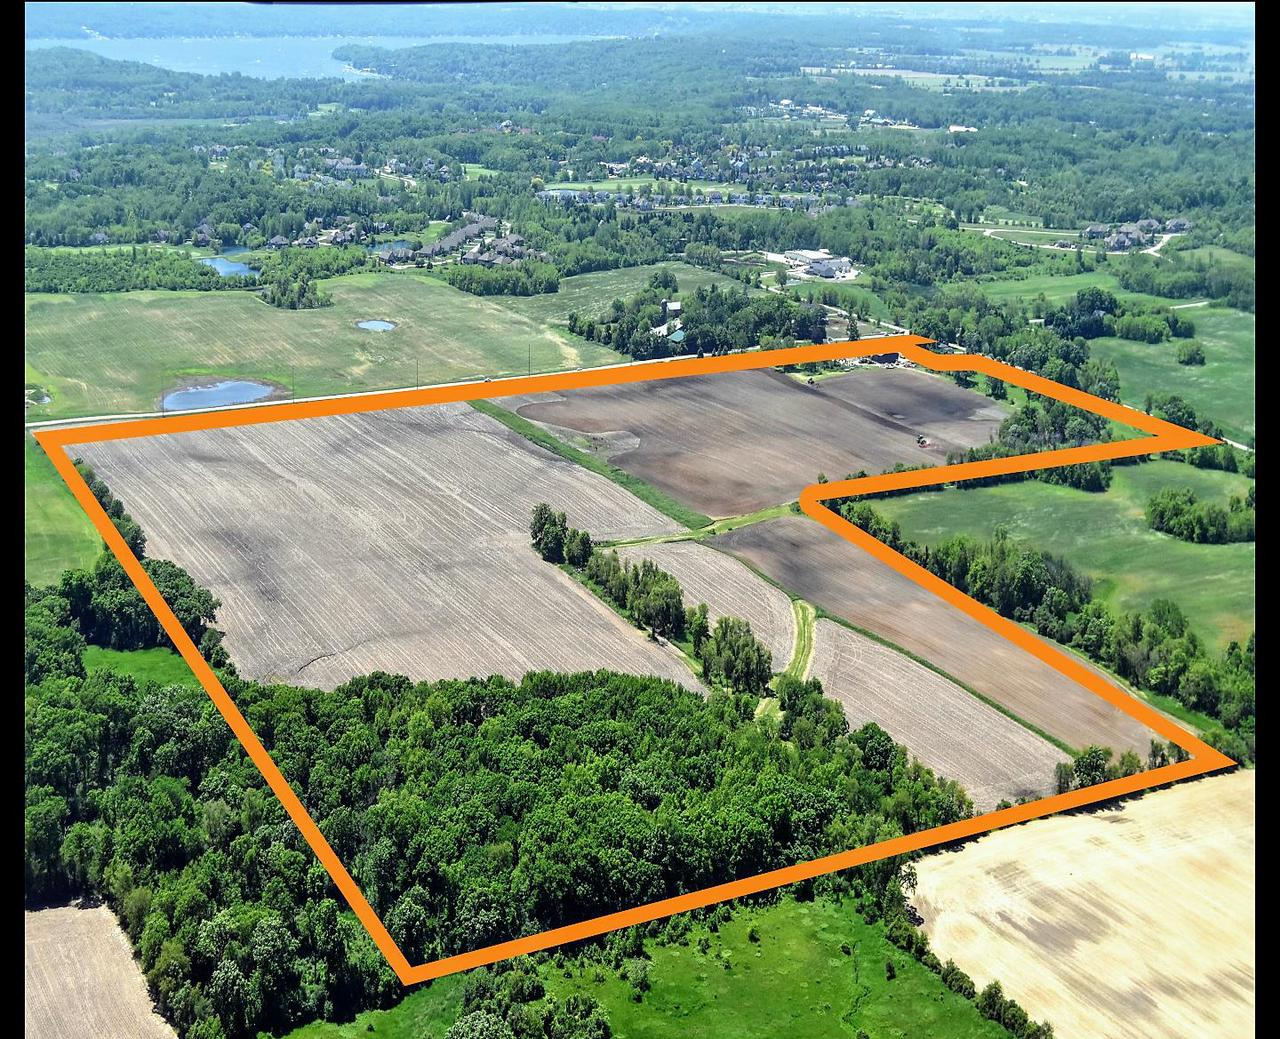 THIS PROPERTY HAS IT ALL!! 118+/- acre farm. 94+/- tillable acres (zoned A1) with drain tile throughout. 94+/- acres currently leased for 2019 crop season. 60x40 and 40x56 pole buildings, 4 bedroom house and buildings being sold AS IS CONDITION.  House needs some work and updates but very solid structure. Well maintained 8+/- wooded acres (zoned C2) with mowed trails. Property is full of wildlife and outdoor recreation, mowed pasture land and trails. Property is also being divided and sold as 3, 35+/- acre proposed buildable sites. MLS#'s 1644670, 1644671, 1644672. Located close to Lake Geneva, Delavan Lake, Lake Como and Geneva National! This property has been in the family for over 100 years. A MUST SEE!! Very easy to walk the property. Easy access to Interstate 43, Highways 12 and 50.